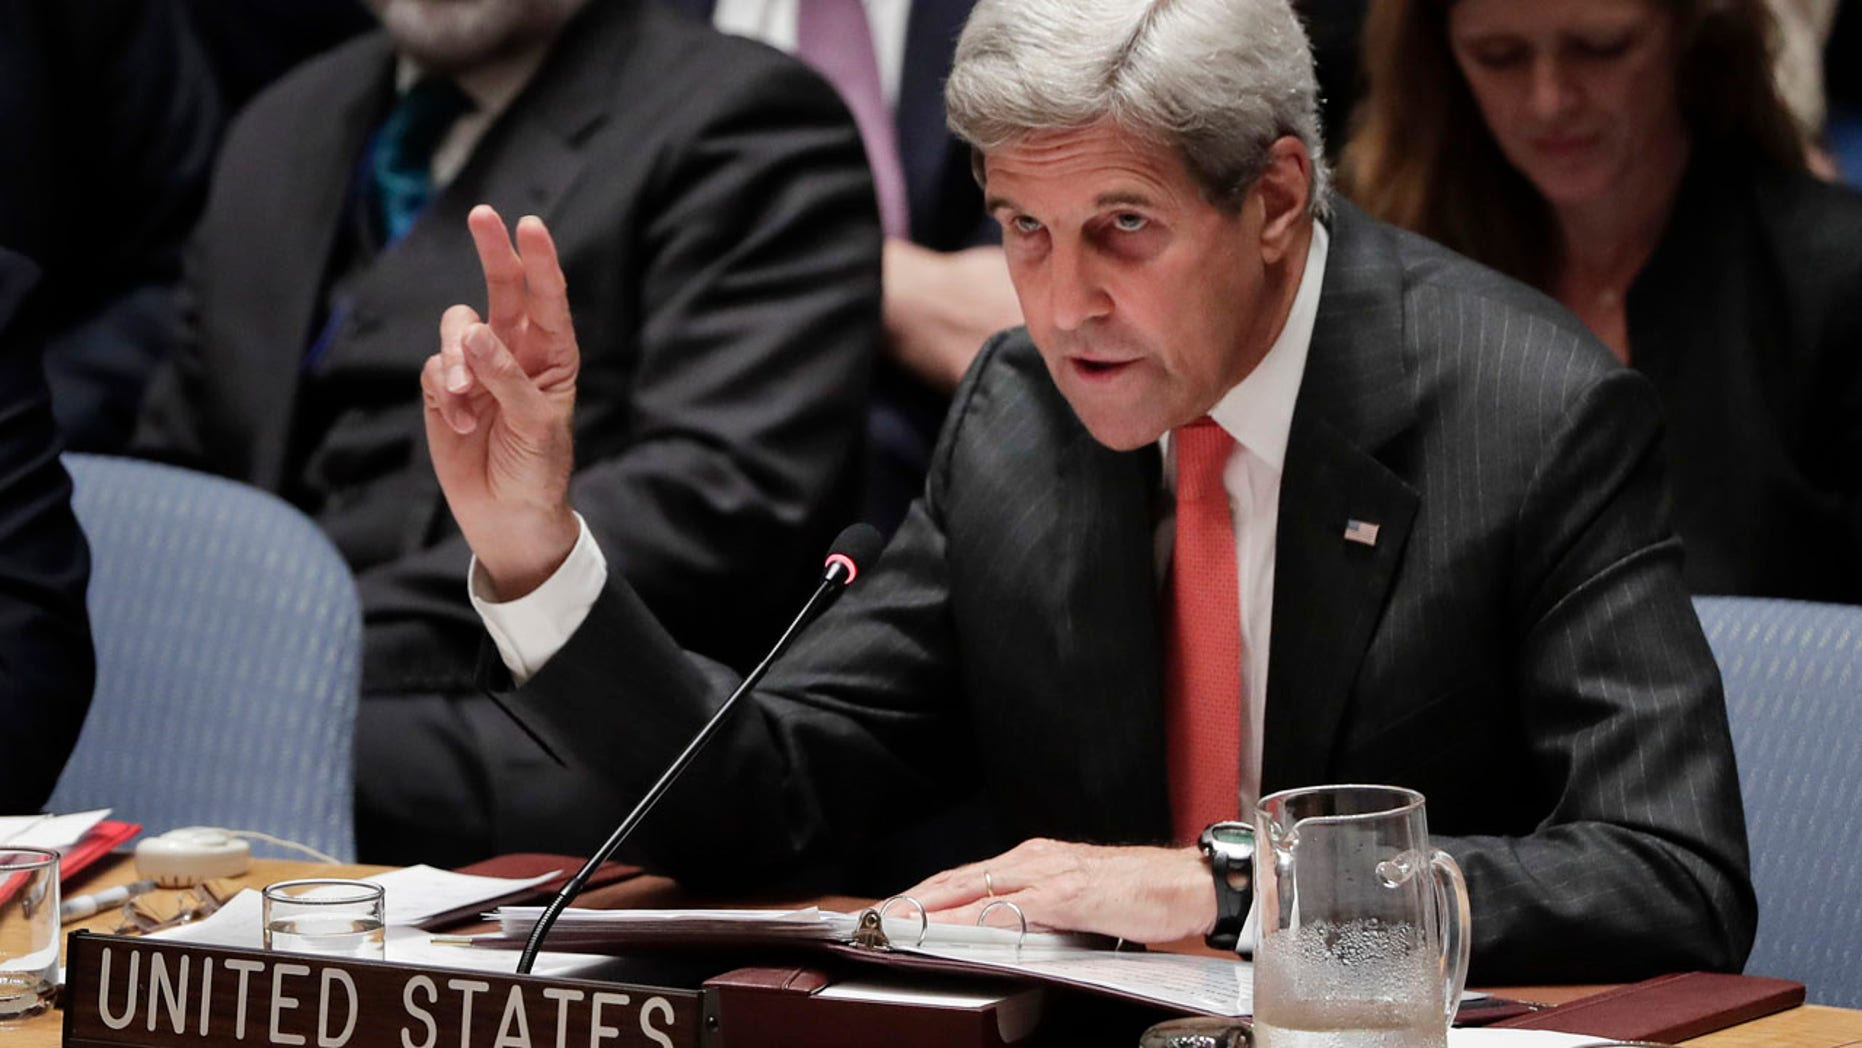 Sept. 21, 2016: U.S Secretary of State John Kerry speaks during a Security Council meeting at U.N. headquarters.